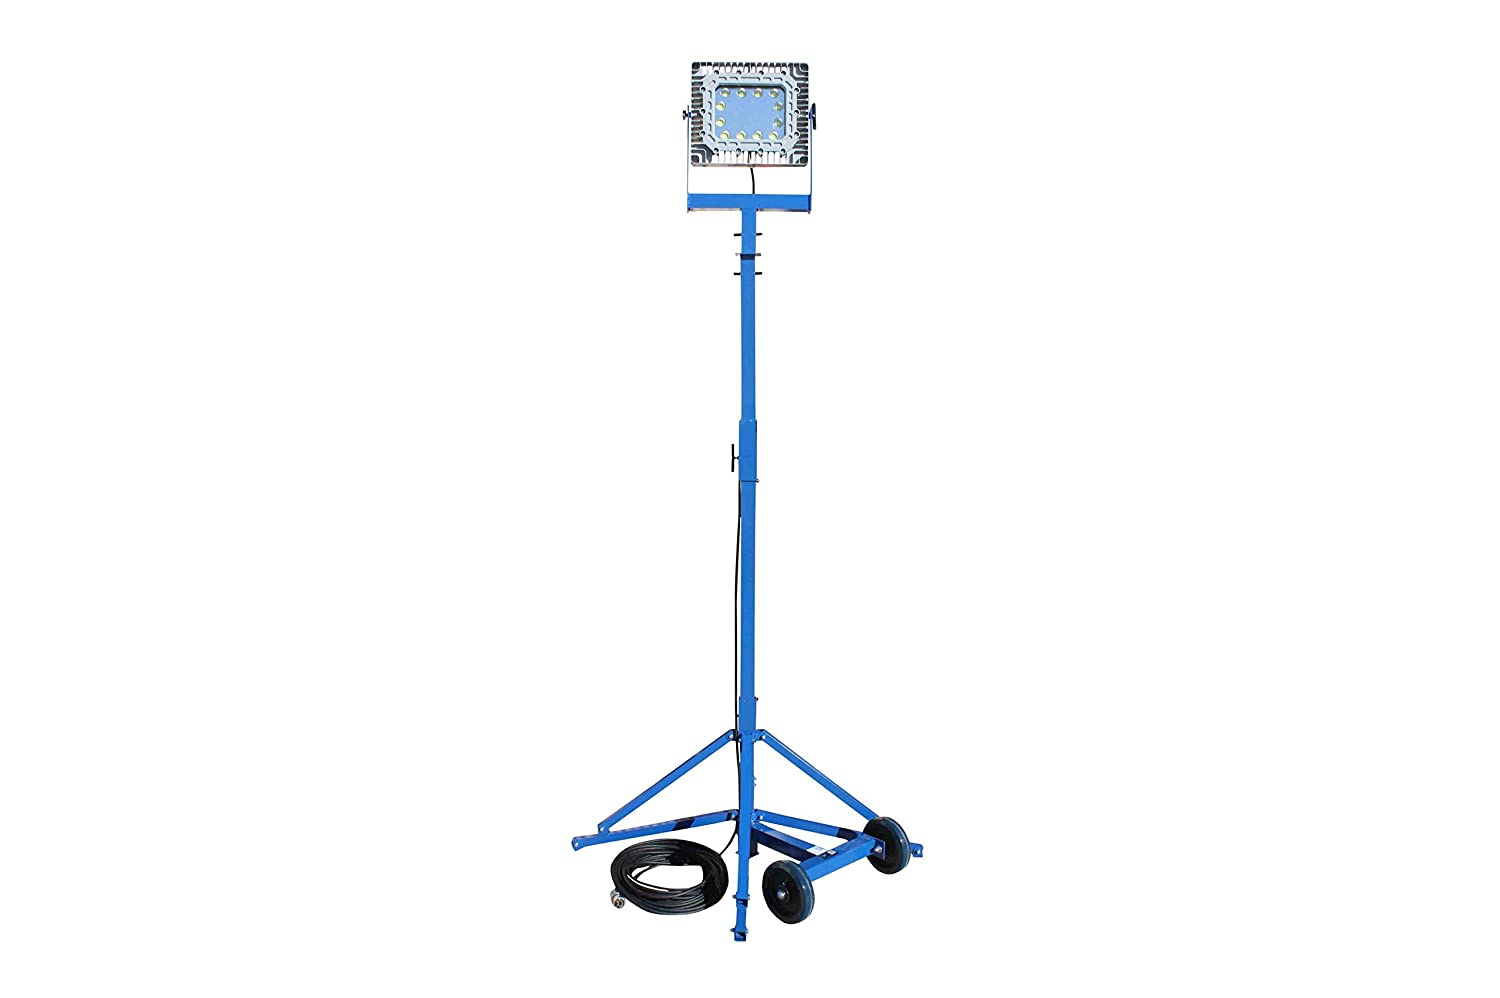 9.42 Height Tripod Mount Class 2 Division 1 150 Watt Explosion Proof LED Light Tower